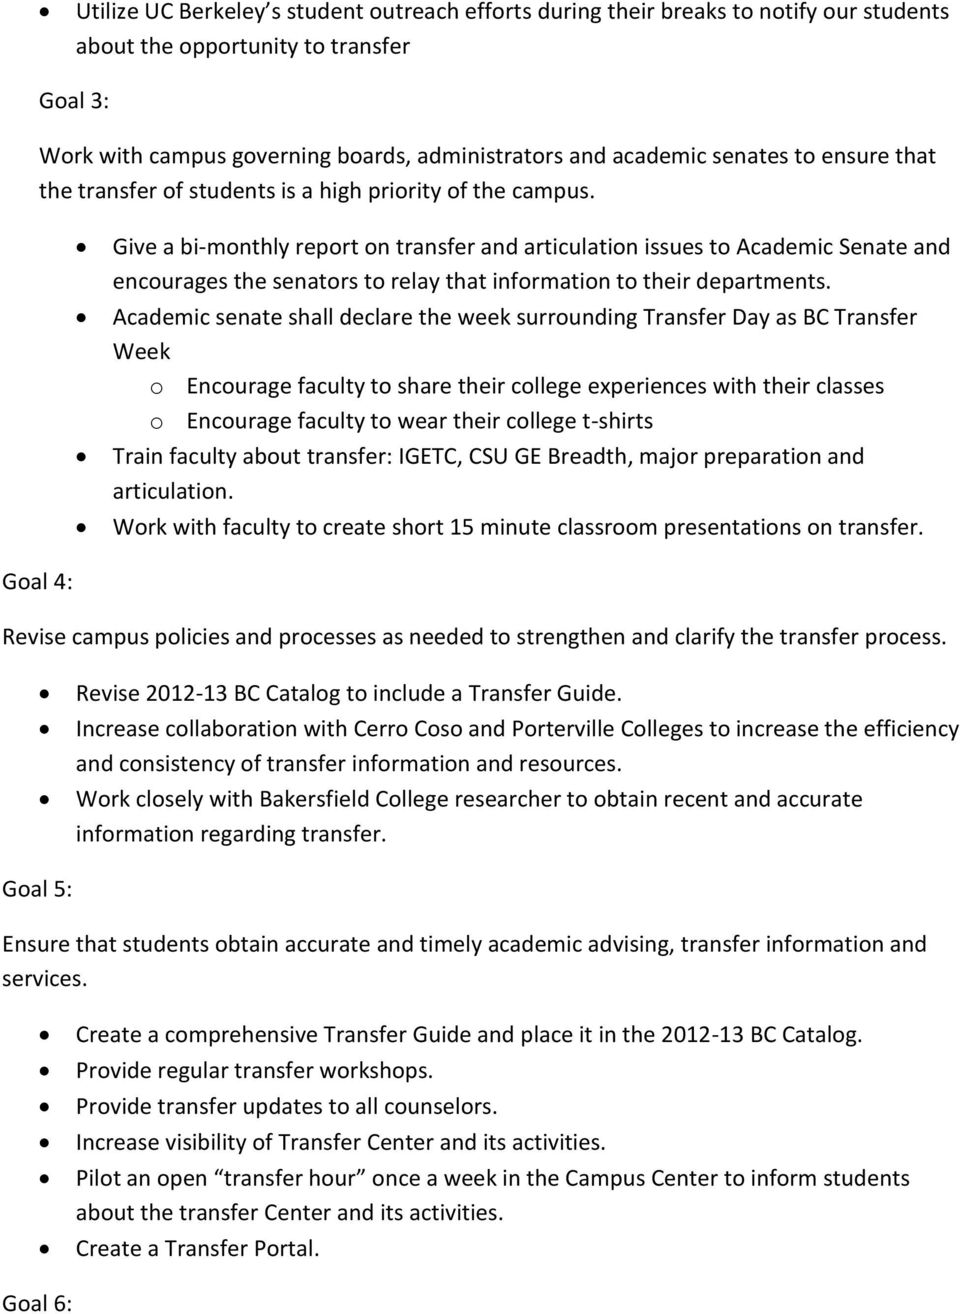 Give a bi-monthly report on transfer and articulation issues to Academic Senate and encourages the senators to relay that information to their departments.